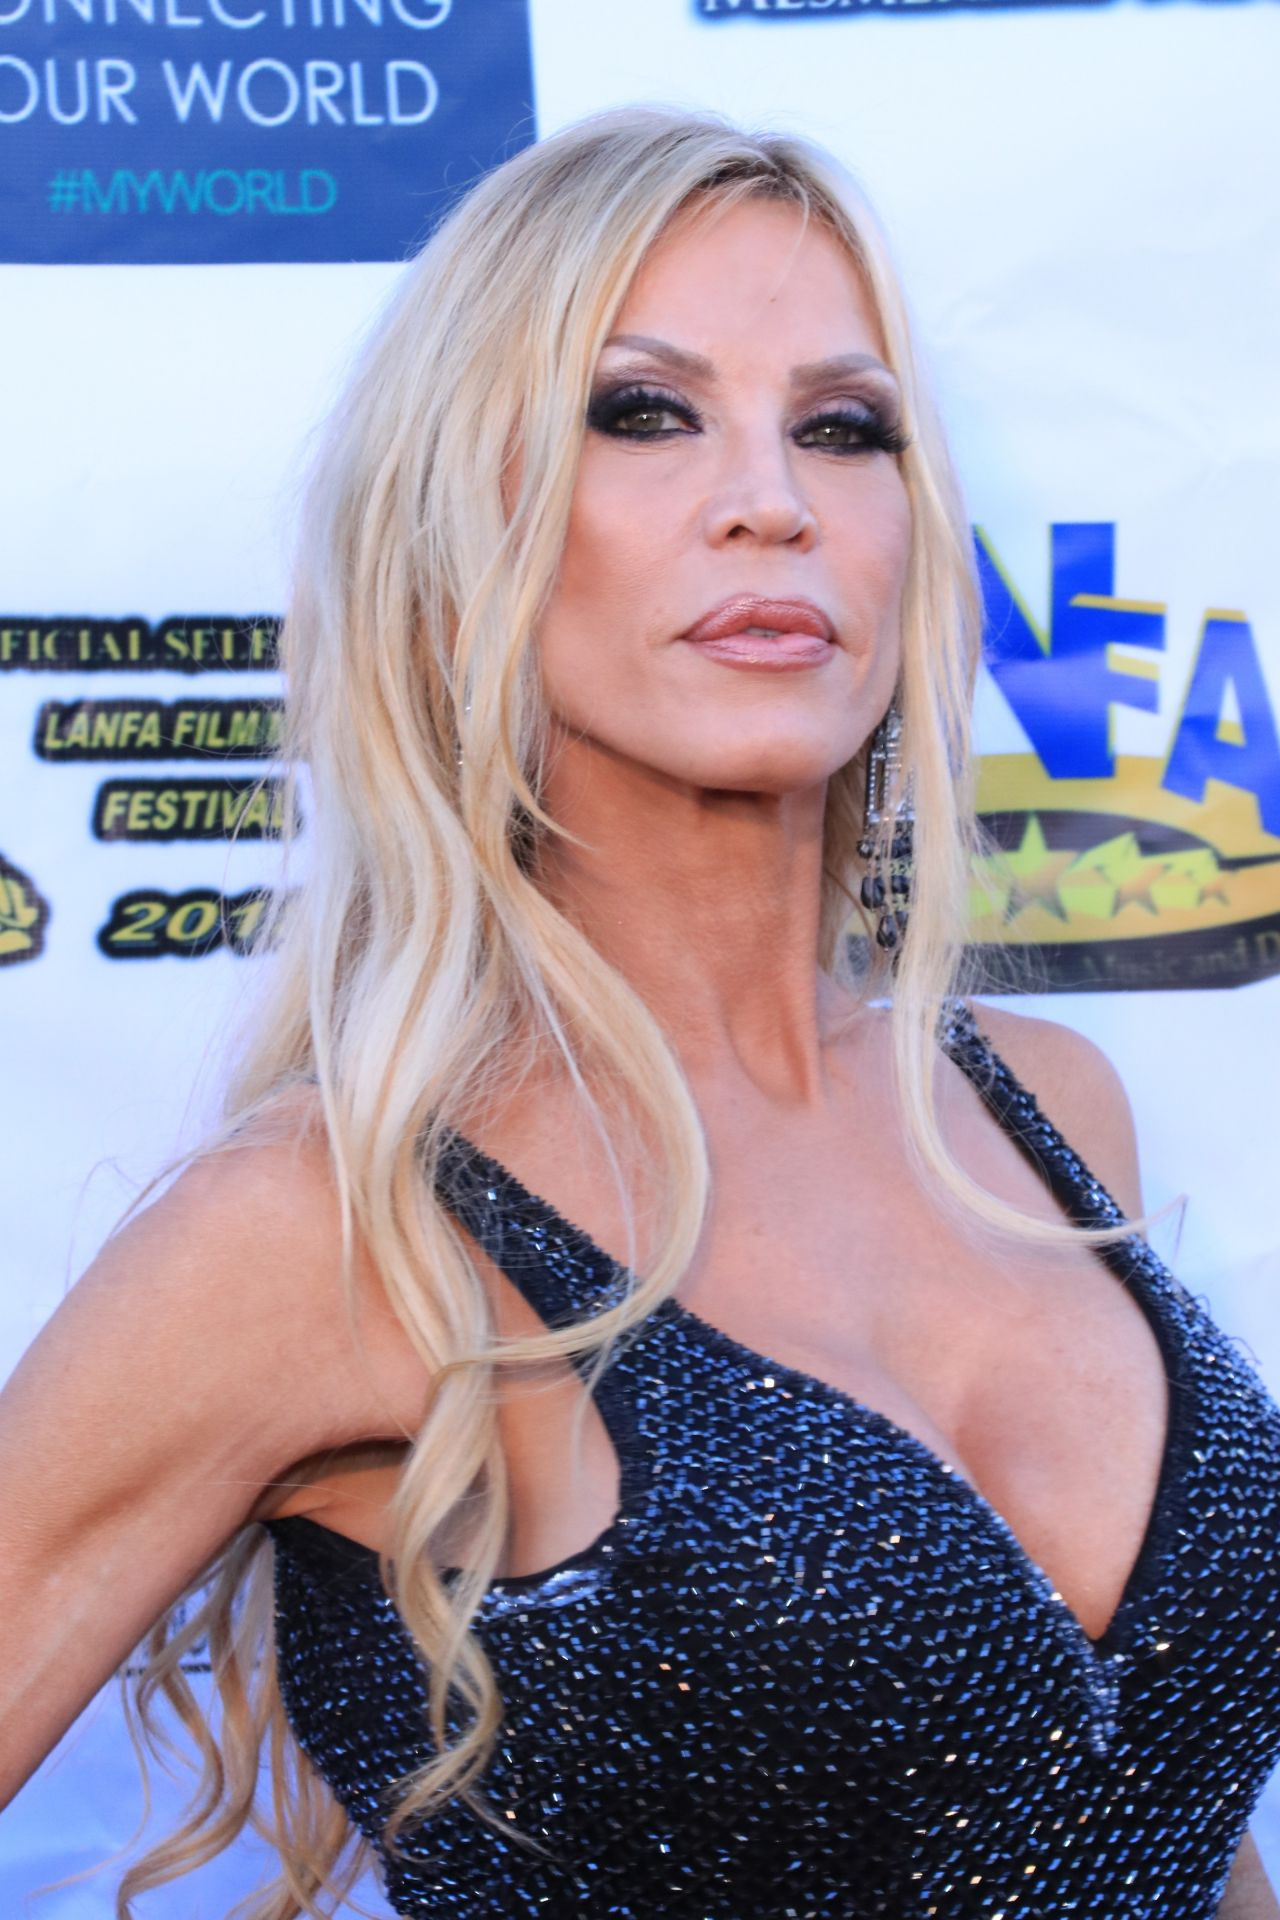 amber-lynn-los-angeles-nollywood-awards-08-07-2018-4.jpg